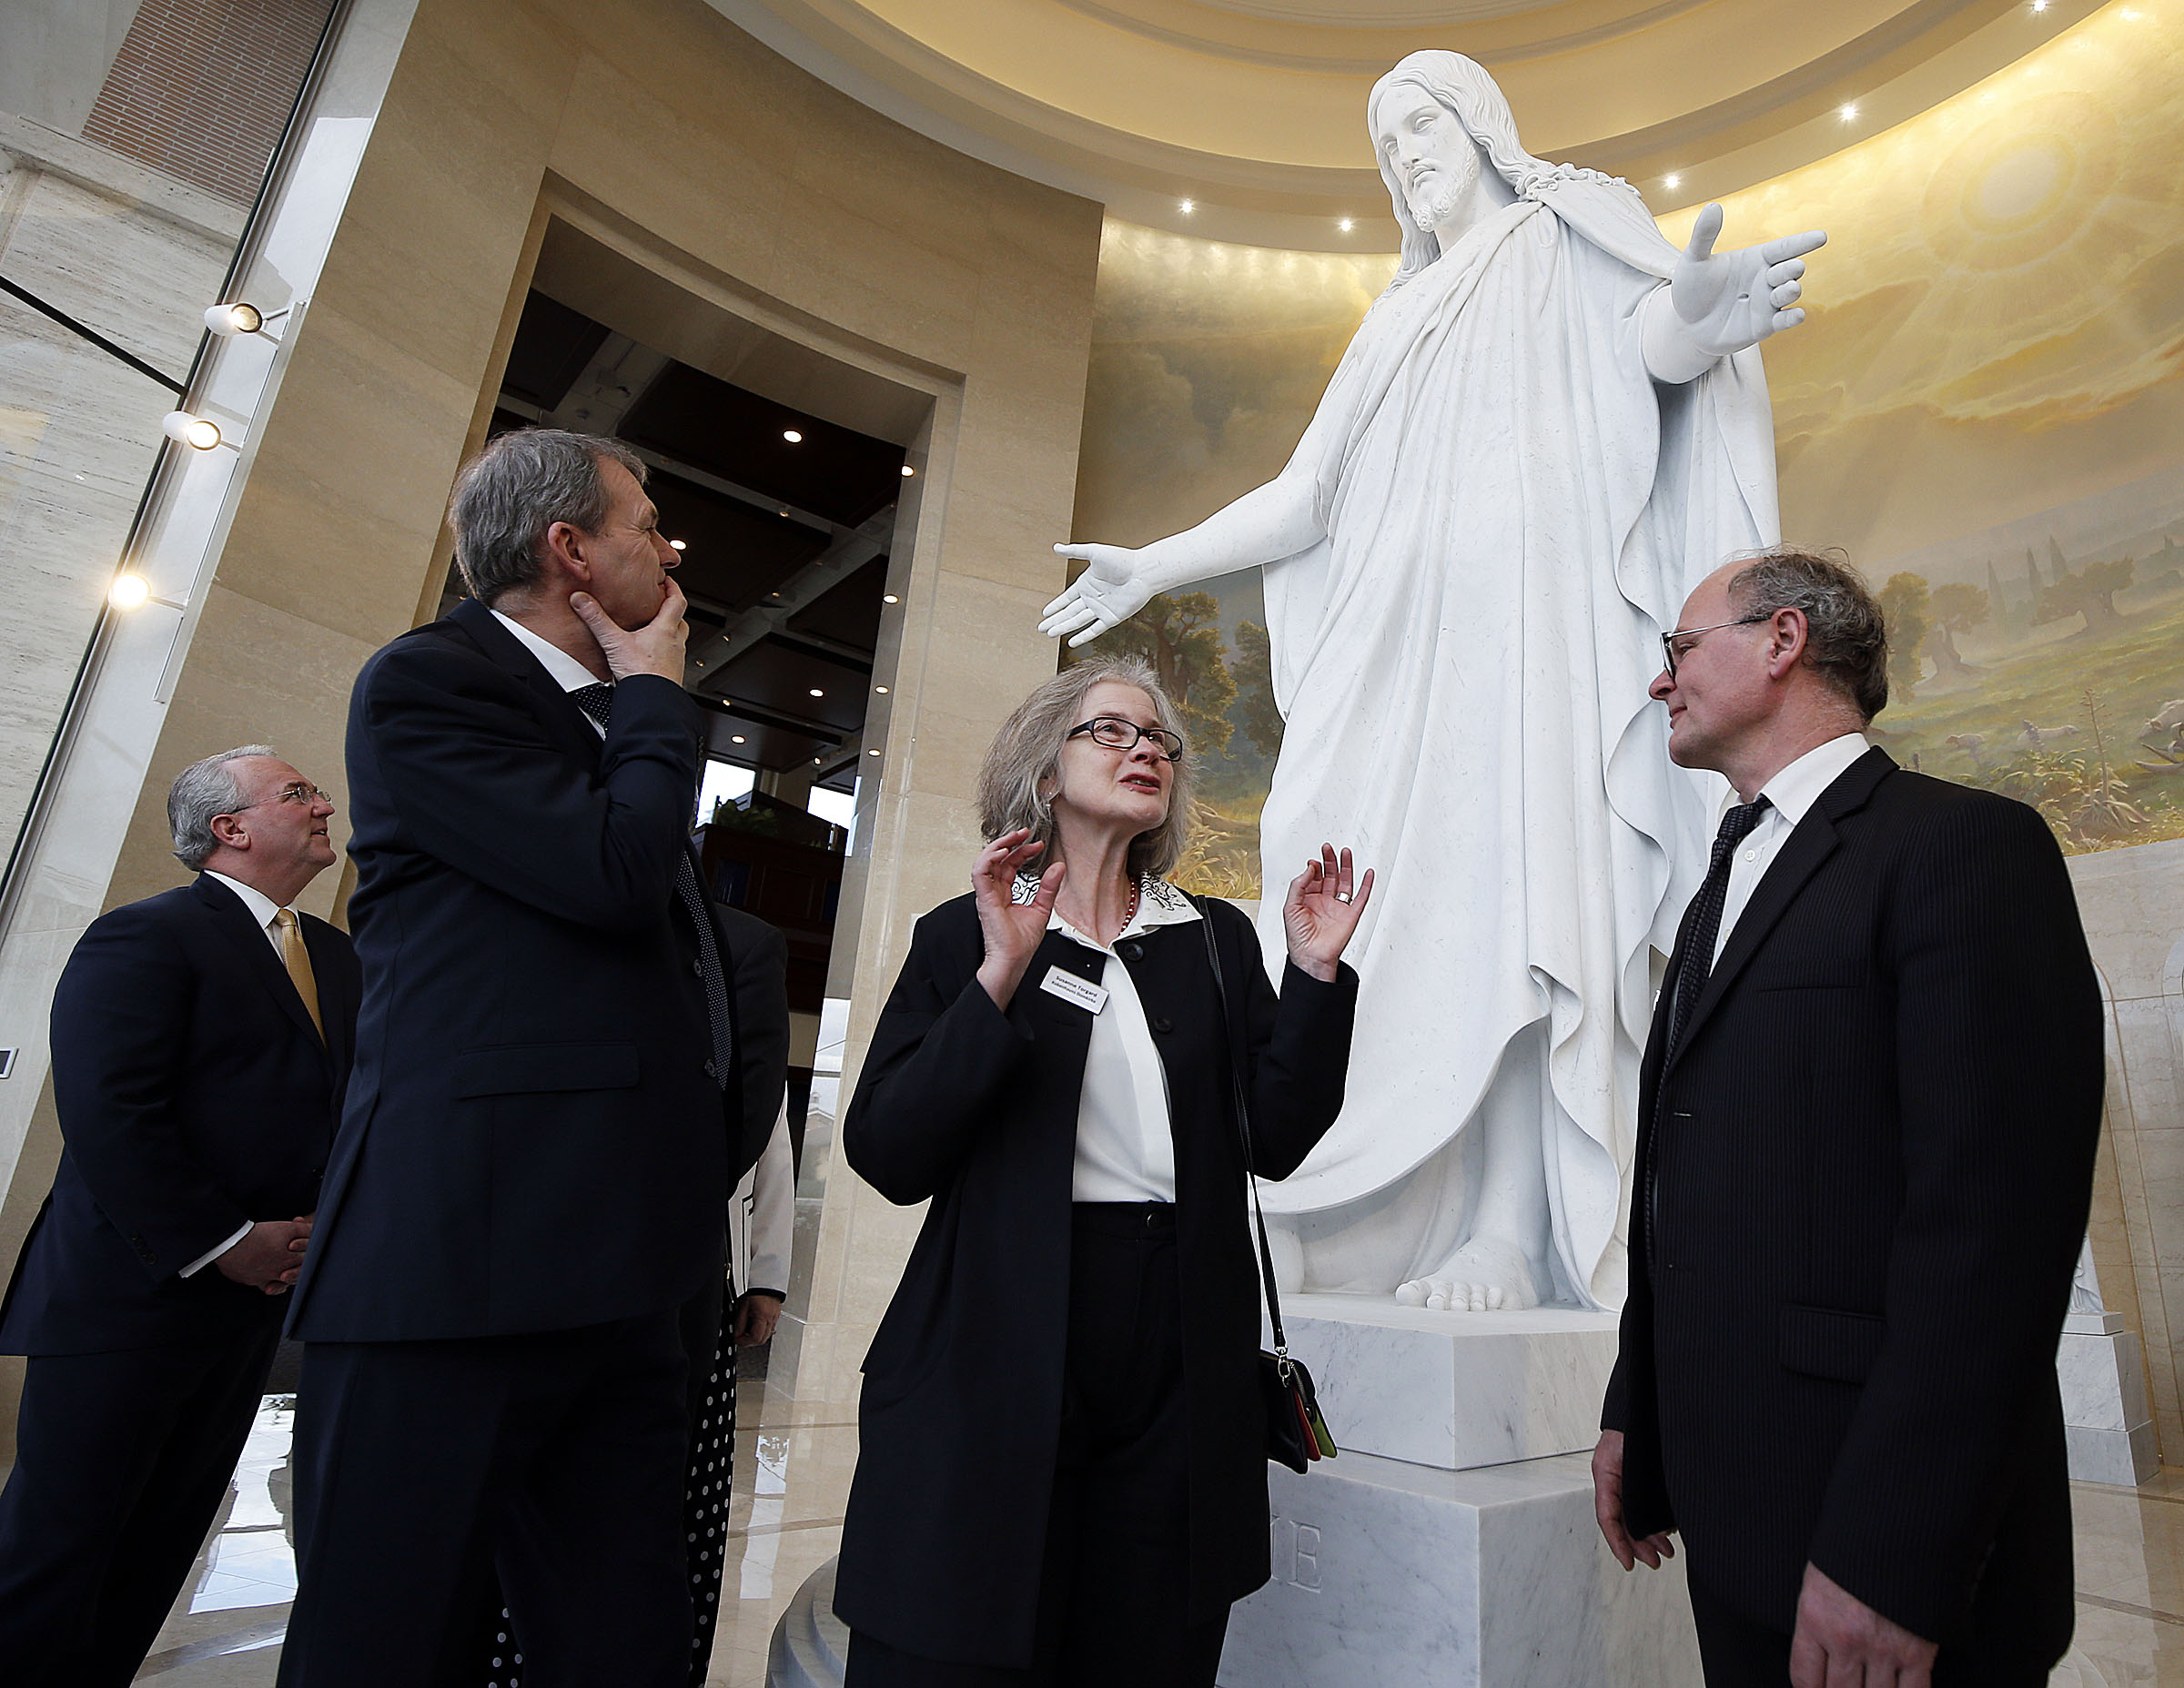 Susanne Torgard, curator at the Church of Our Lady in Copenhagen, Denmark, home of the original Christus statue, stands at the base of the digital, 3-D replica done in marble at the Rome Italy Temple and talks about it with Elder Jack N. Gerard, far left, of The Church of Jesus Christ of Latter-day Saints, and her colleagues at the Church of Our Lady, Bent Sloth, facility director, and on the right, Steffen Ringgaard Andresen, vicar priest in Rome, Italy, on Wednesday, Jan. 16, 2019.